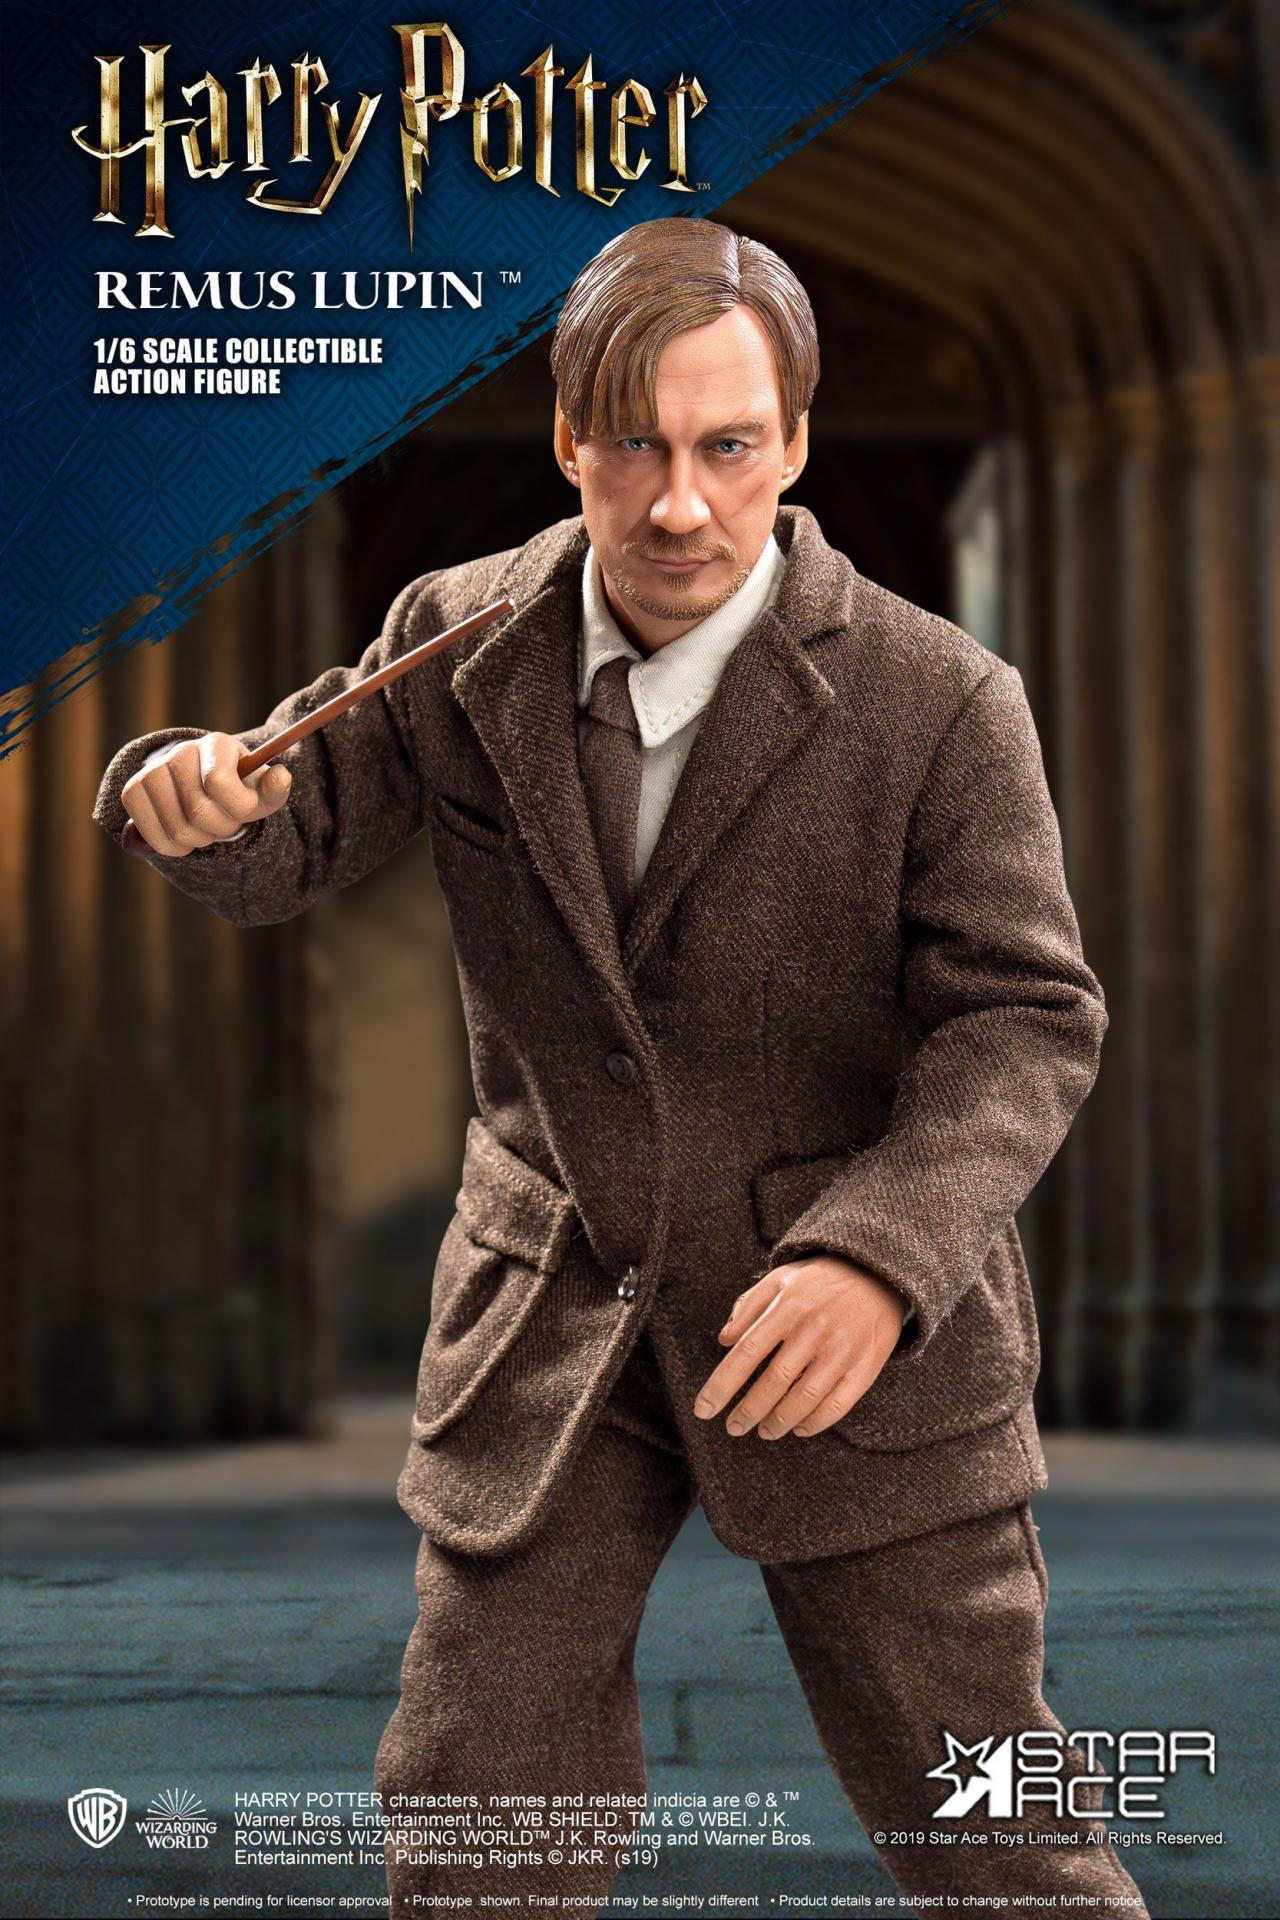 Harry potter my favourite movie figurine 16 remus lupin deluxe ver 30 cm02 4